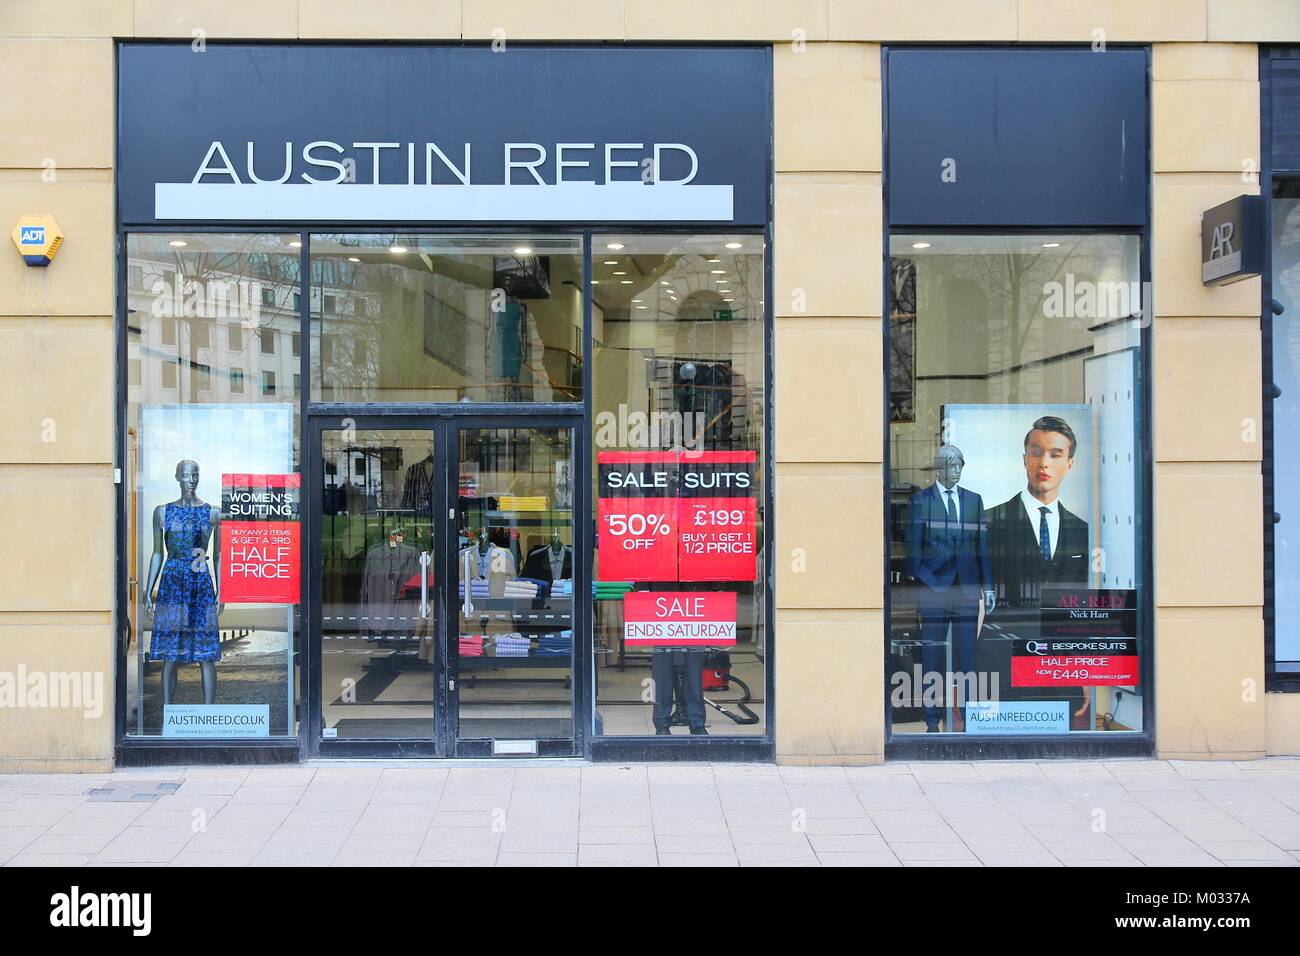 Birmingham Uk April 19 Austin Reed Boutique On April 19 2013 In Stock Photo Alamy